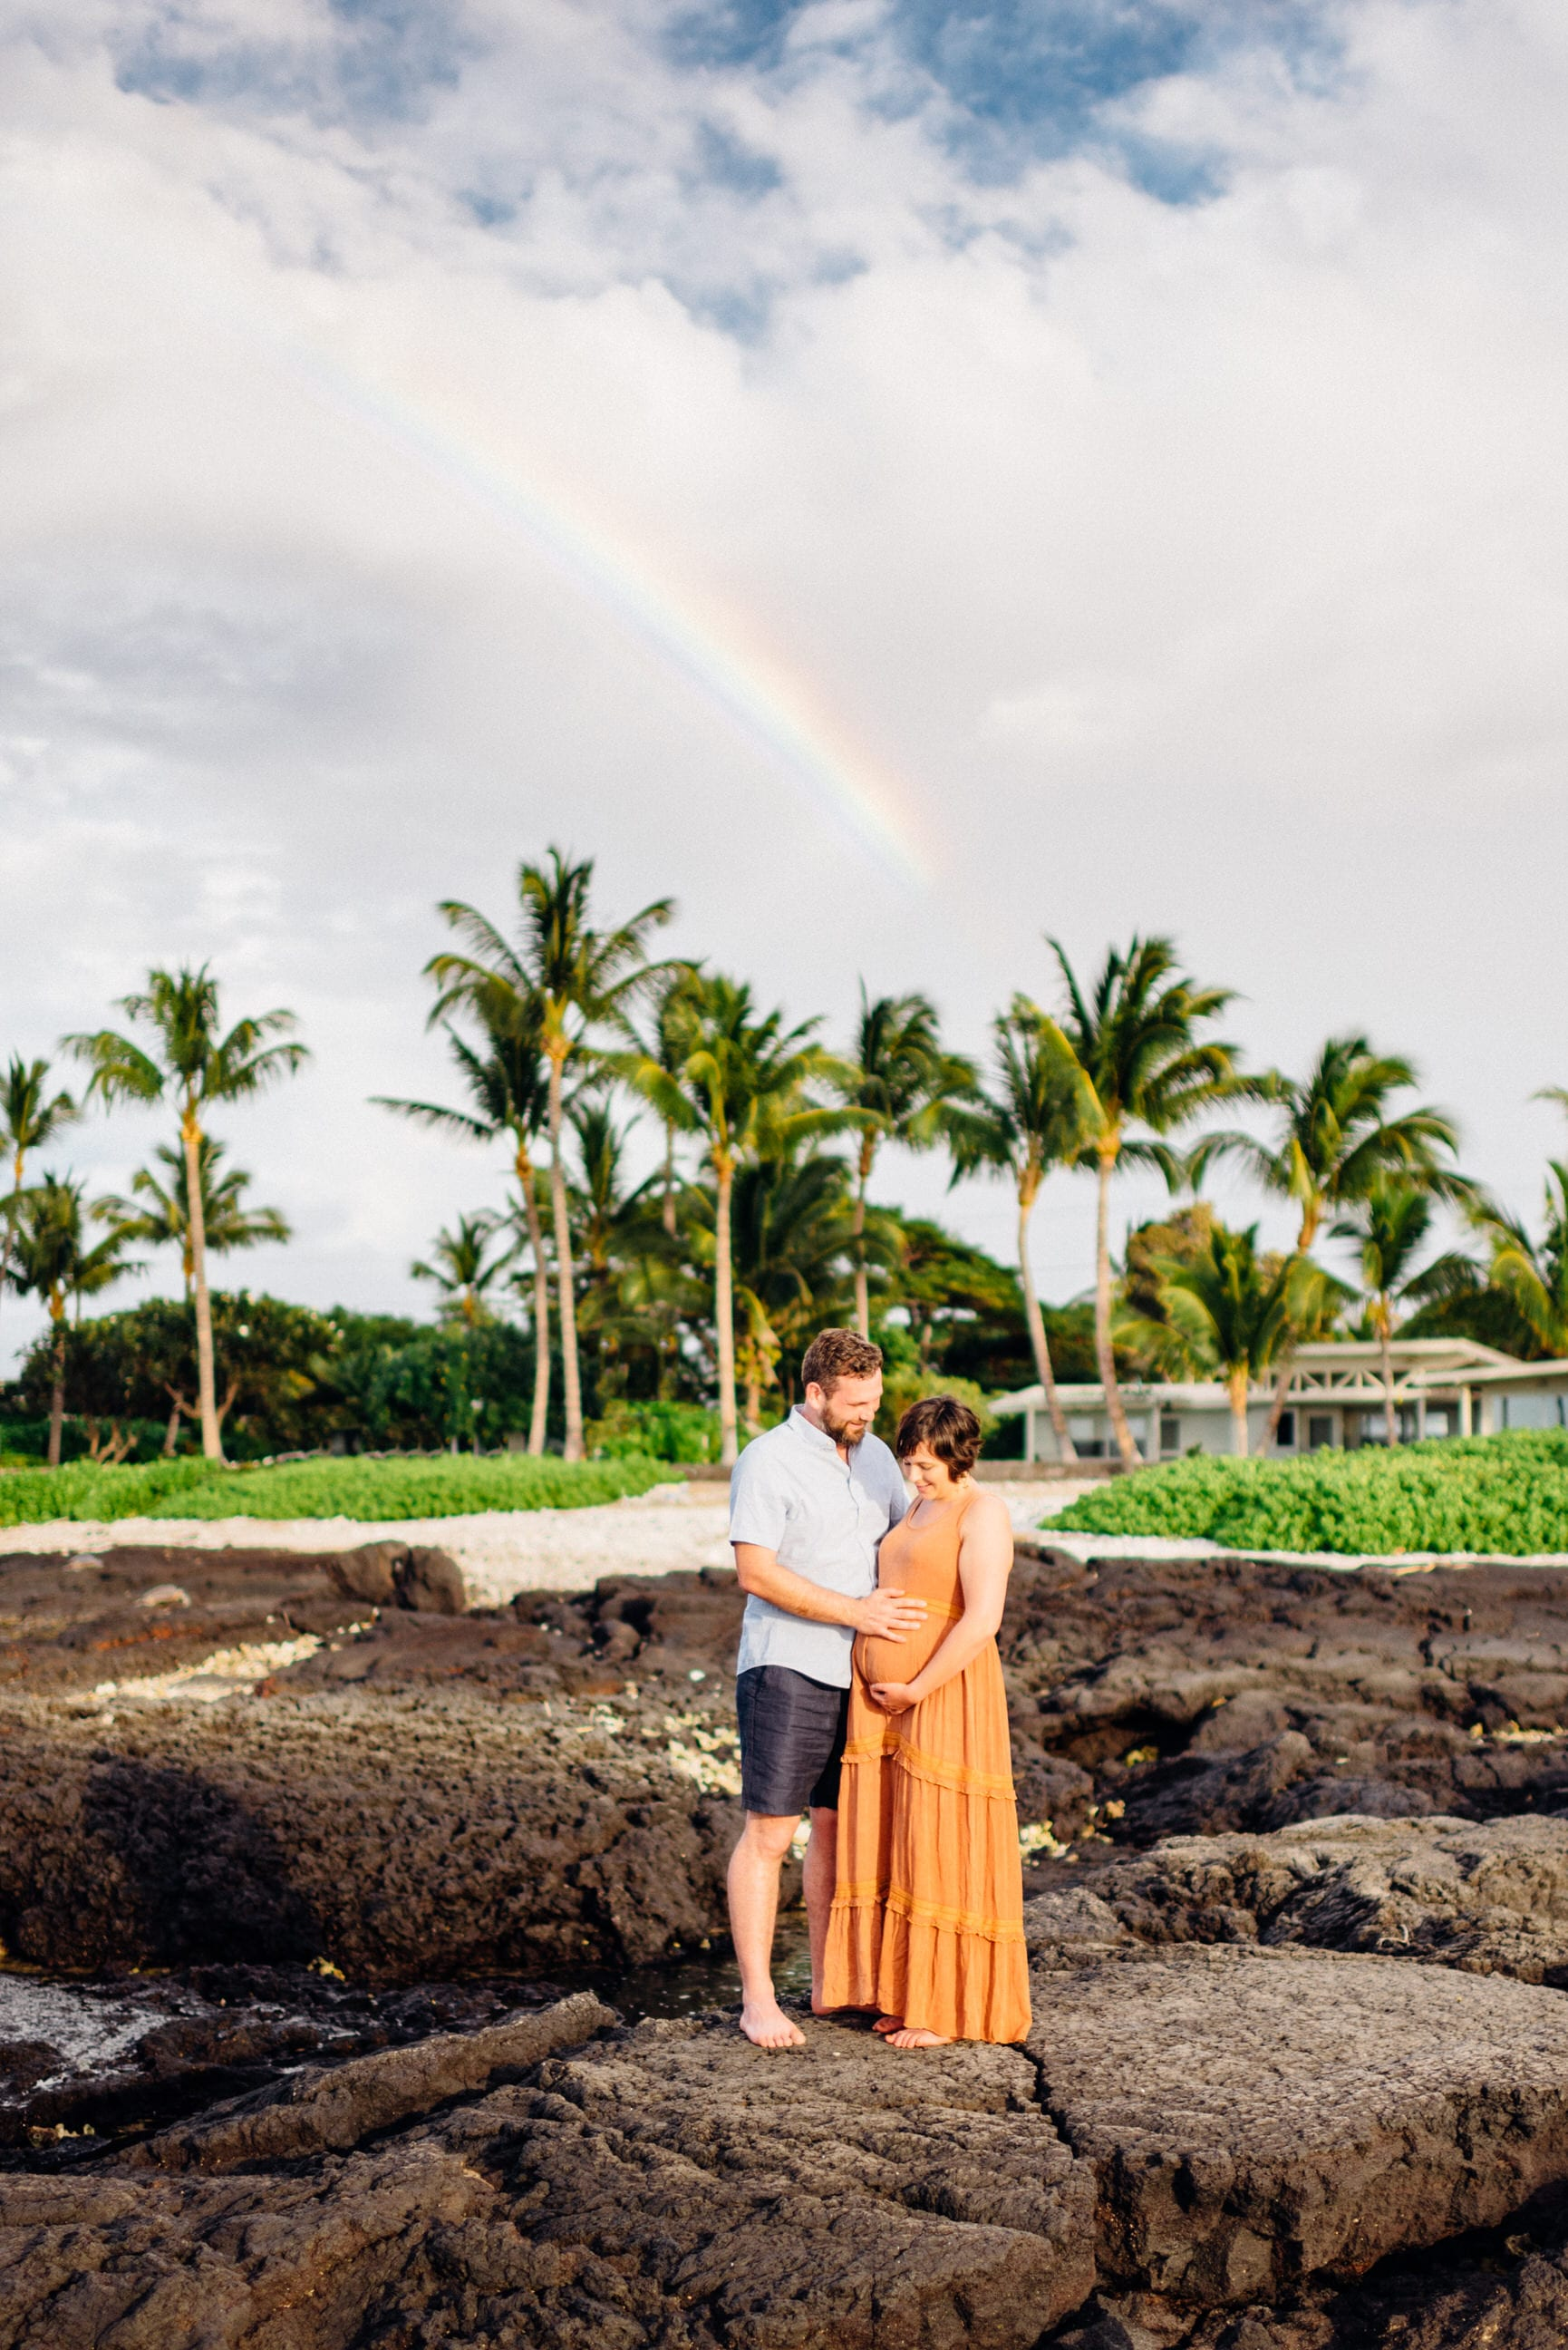 Kona-Photographer-Maternity-Babymoon-Hawaii-Photographers-Drone-4.jpg